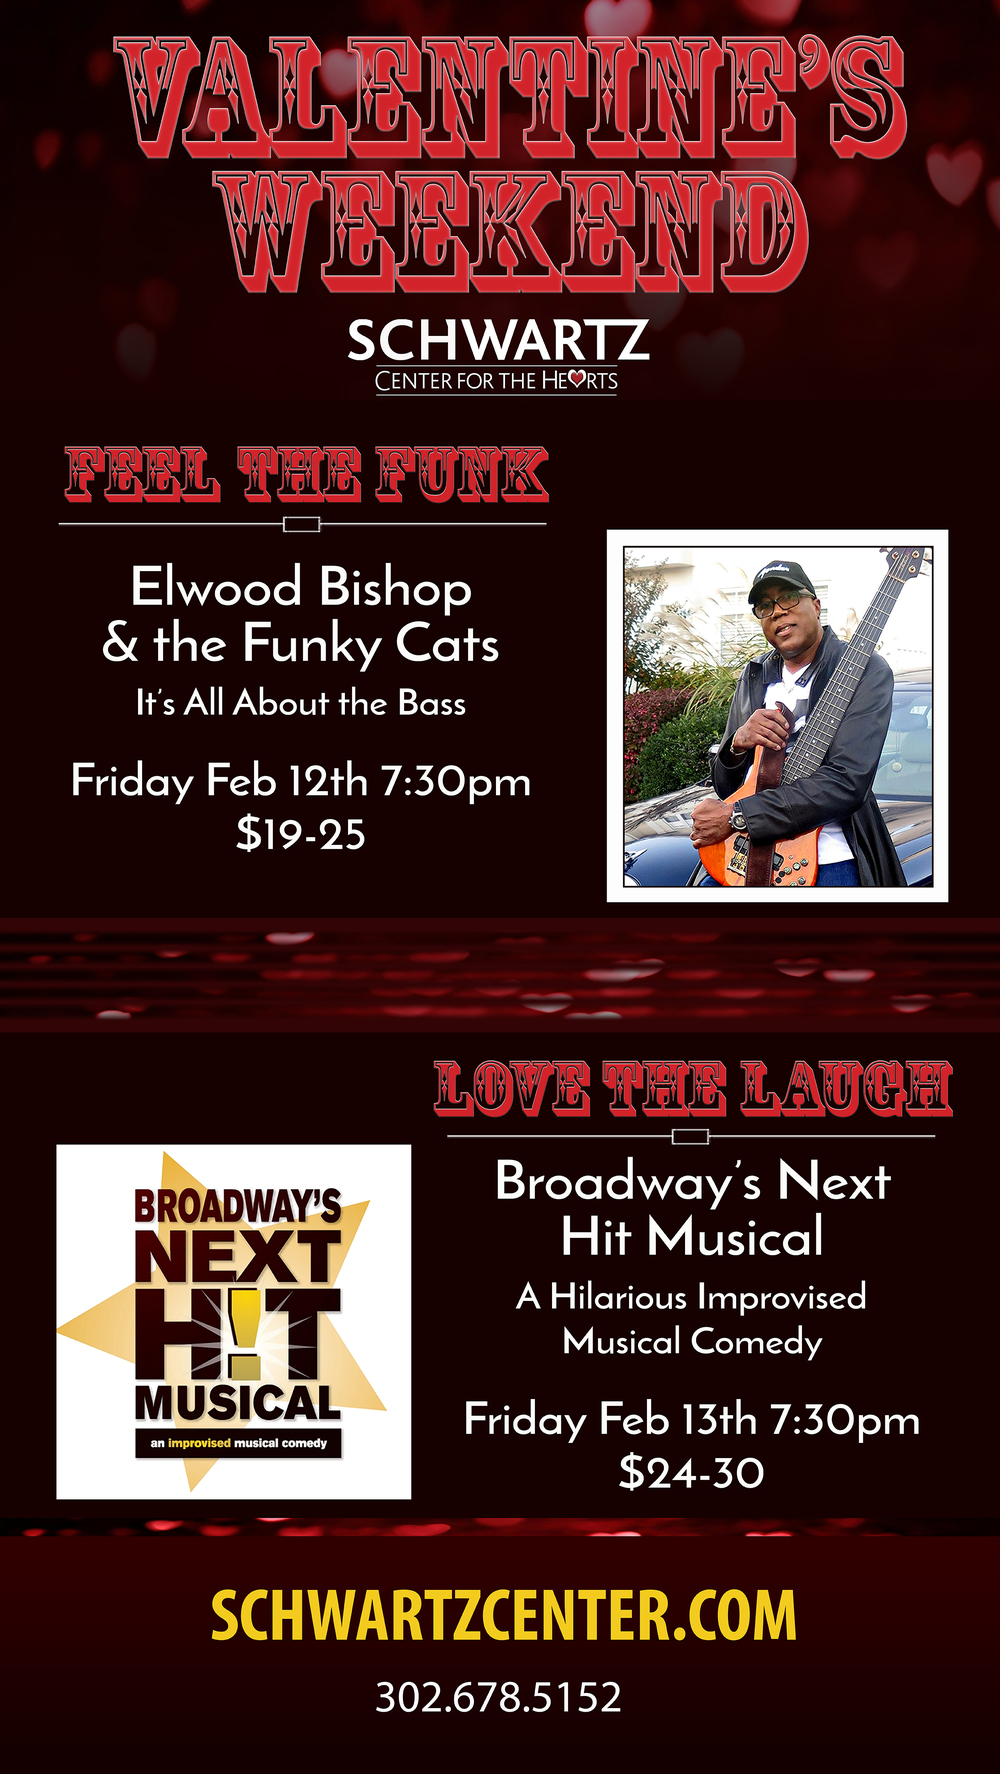 Concert & Theater Poster - Elwood Bishop & the Funky Cats, Broadway's Next Hit Musical Comedy